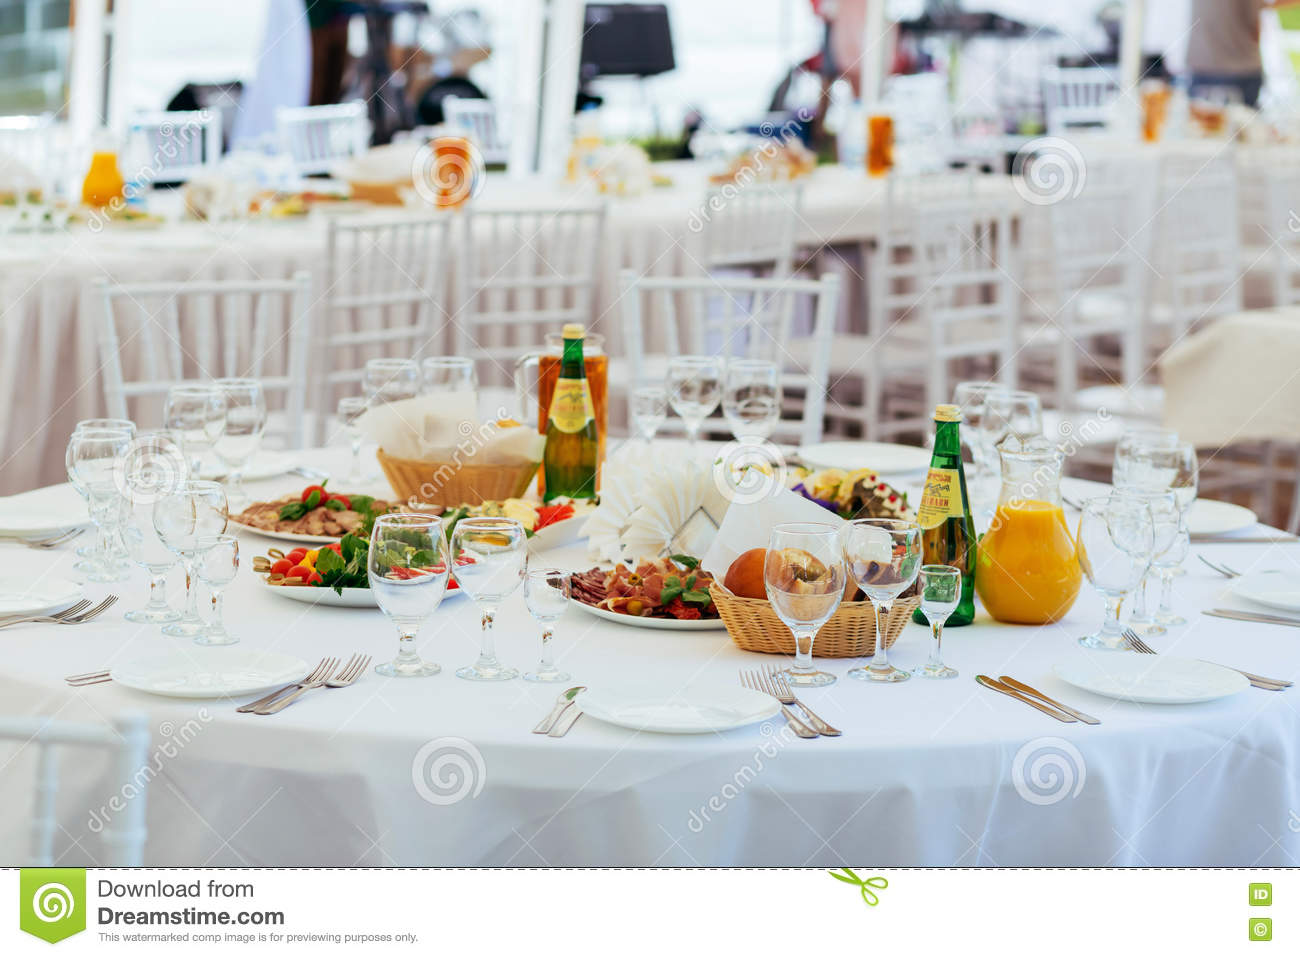 Served Round Table For Outdoor Event Stock Photo Image Of Crockery Lifestyle 72999186